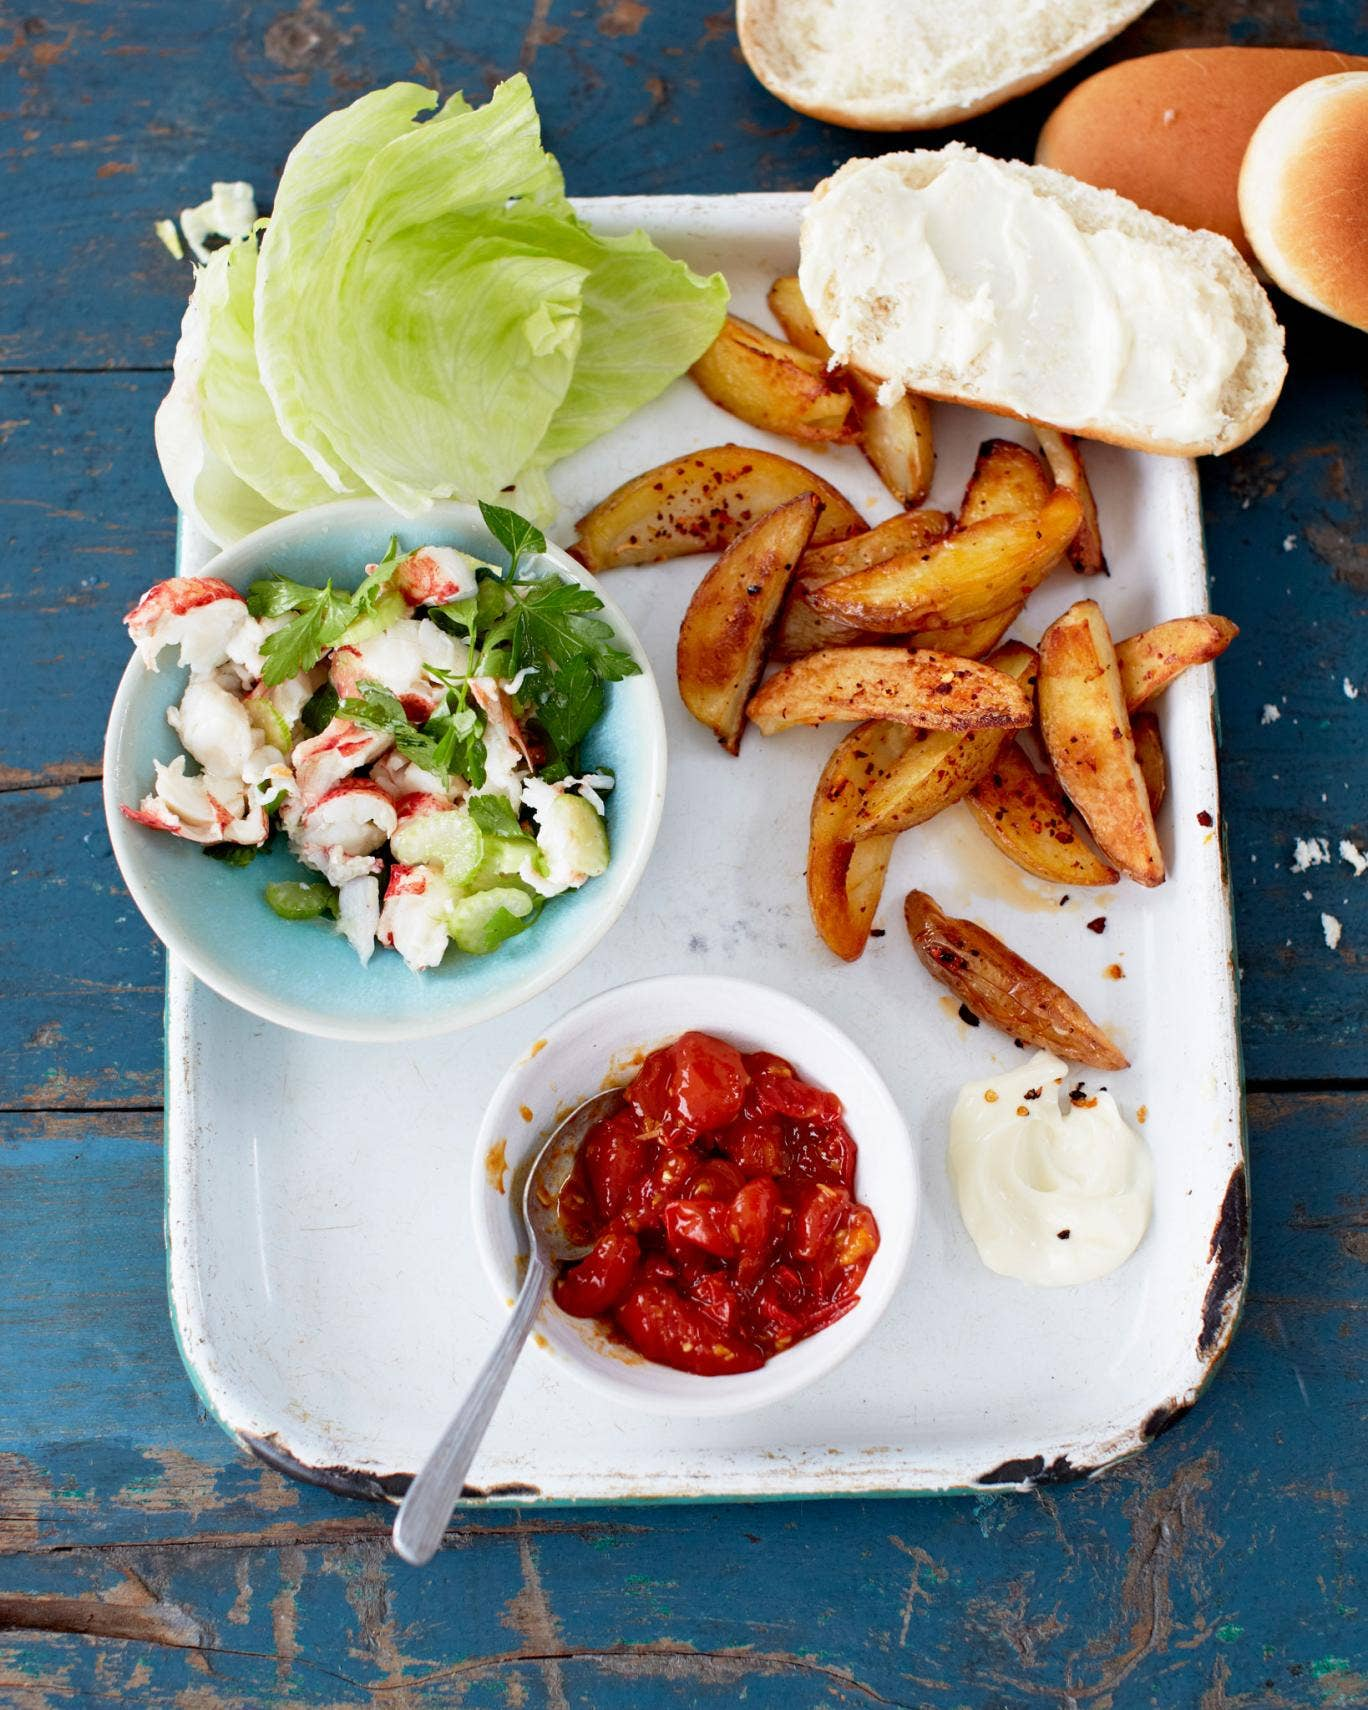 Serve up everything on individual plates so guests can put together their own lobster rolls, with a chilli relish and chips on the side